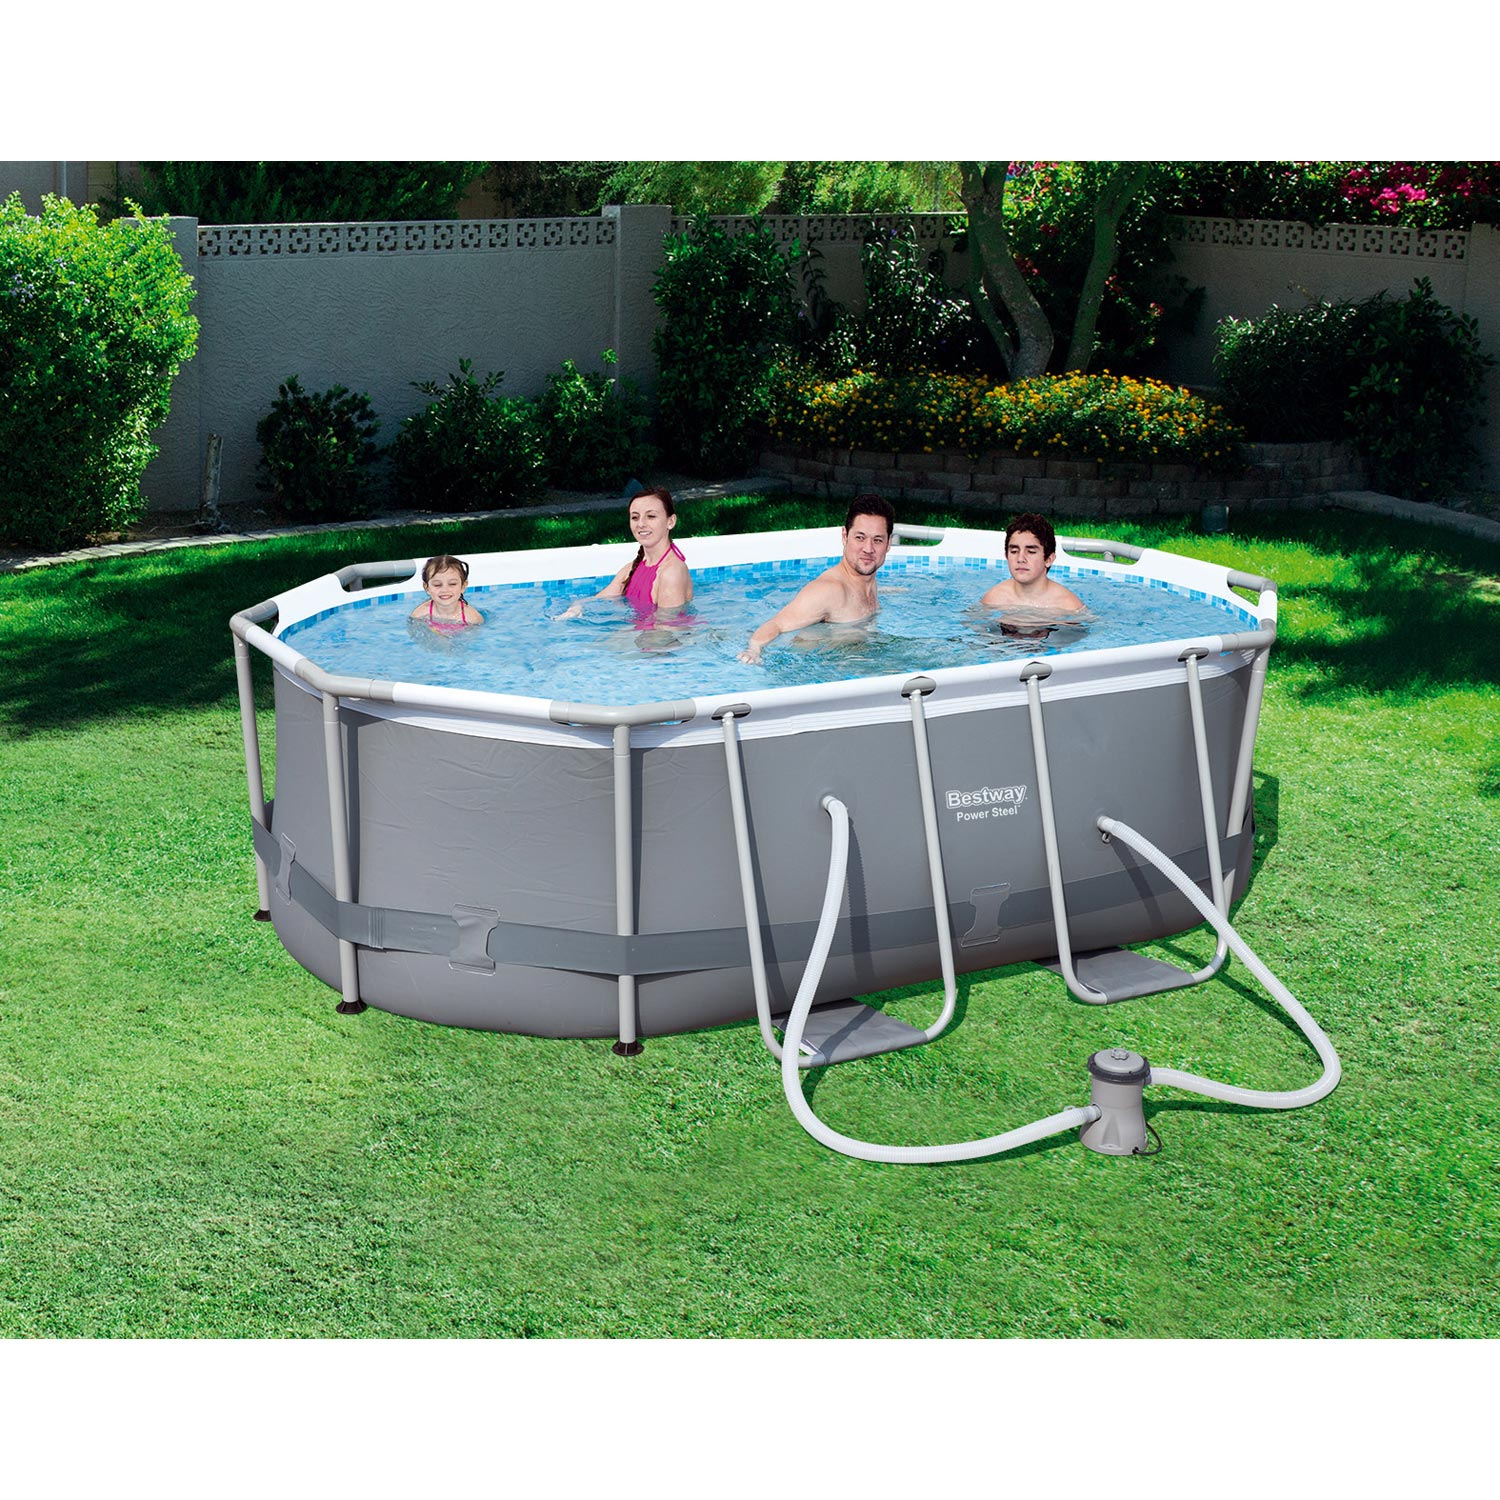 Piscine hors sol autoportante tubulaire bestway l 3 x l 2 for Piscine hors sol coque rigide